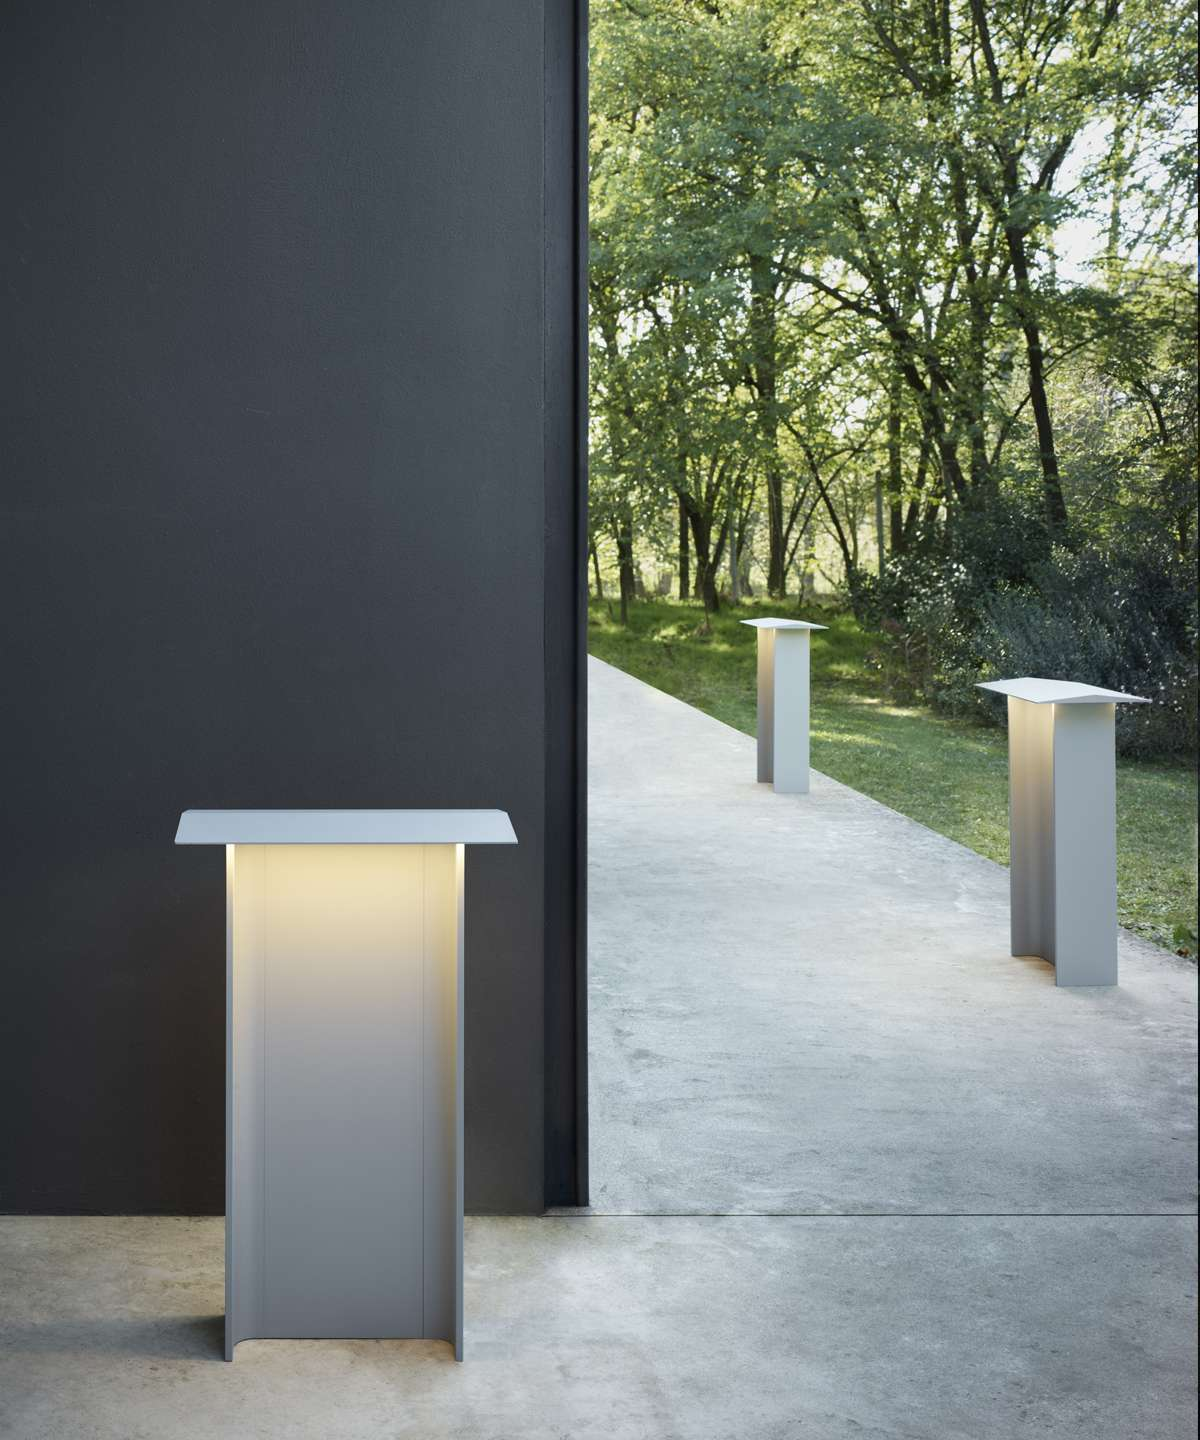 Fienile Outdoor Lamp - Fienile is also available in floor lamp versions for outdoor use, based on the same design inspired by the iconic rural buildings of Norway. Fienile Outdoor is a work of micro-architecture, with its walls and pitched roof extruded in a single, solid block of coated aluminium, while the diffuser is in polycarbonate. The outdoor version of Fienile comes in two heights, 32 or 72 cm, and two colors: pale and dark gray. Thanks to its essential design, Fienile Outdoor fits perfectly into the surrounding landscape and architectural context. The characteristic angled roof, besides being a clear reference to the archetypal form of the house, contributes to screen the light and spread it uniformly on the ground.  Come in different finishes please enquire for more information | Matter of Stuff